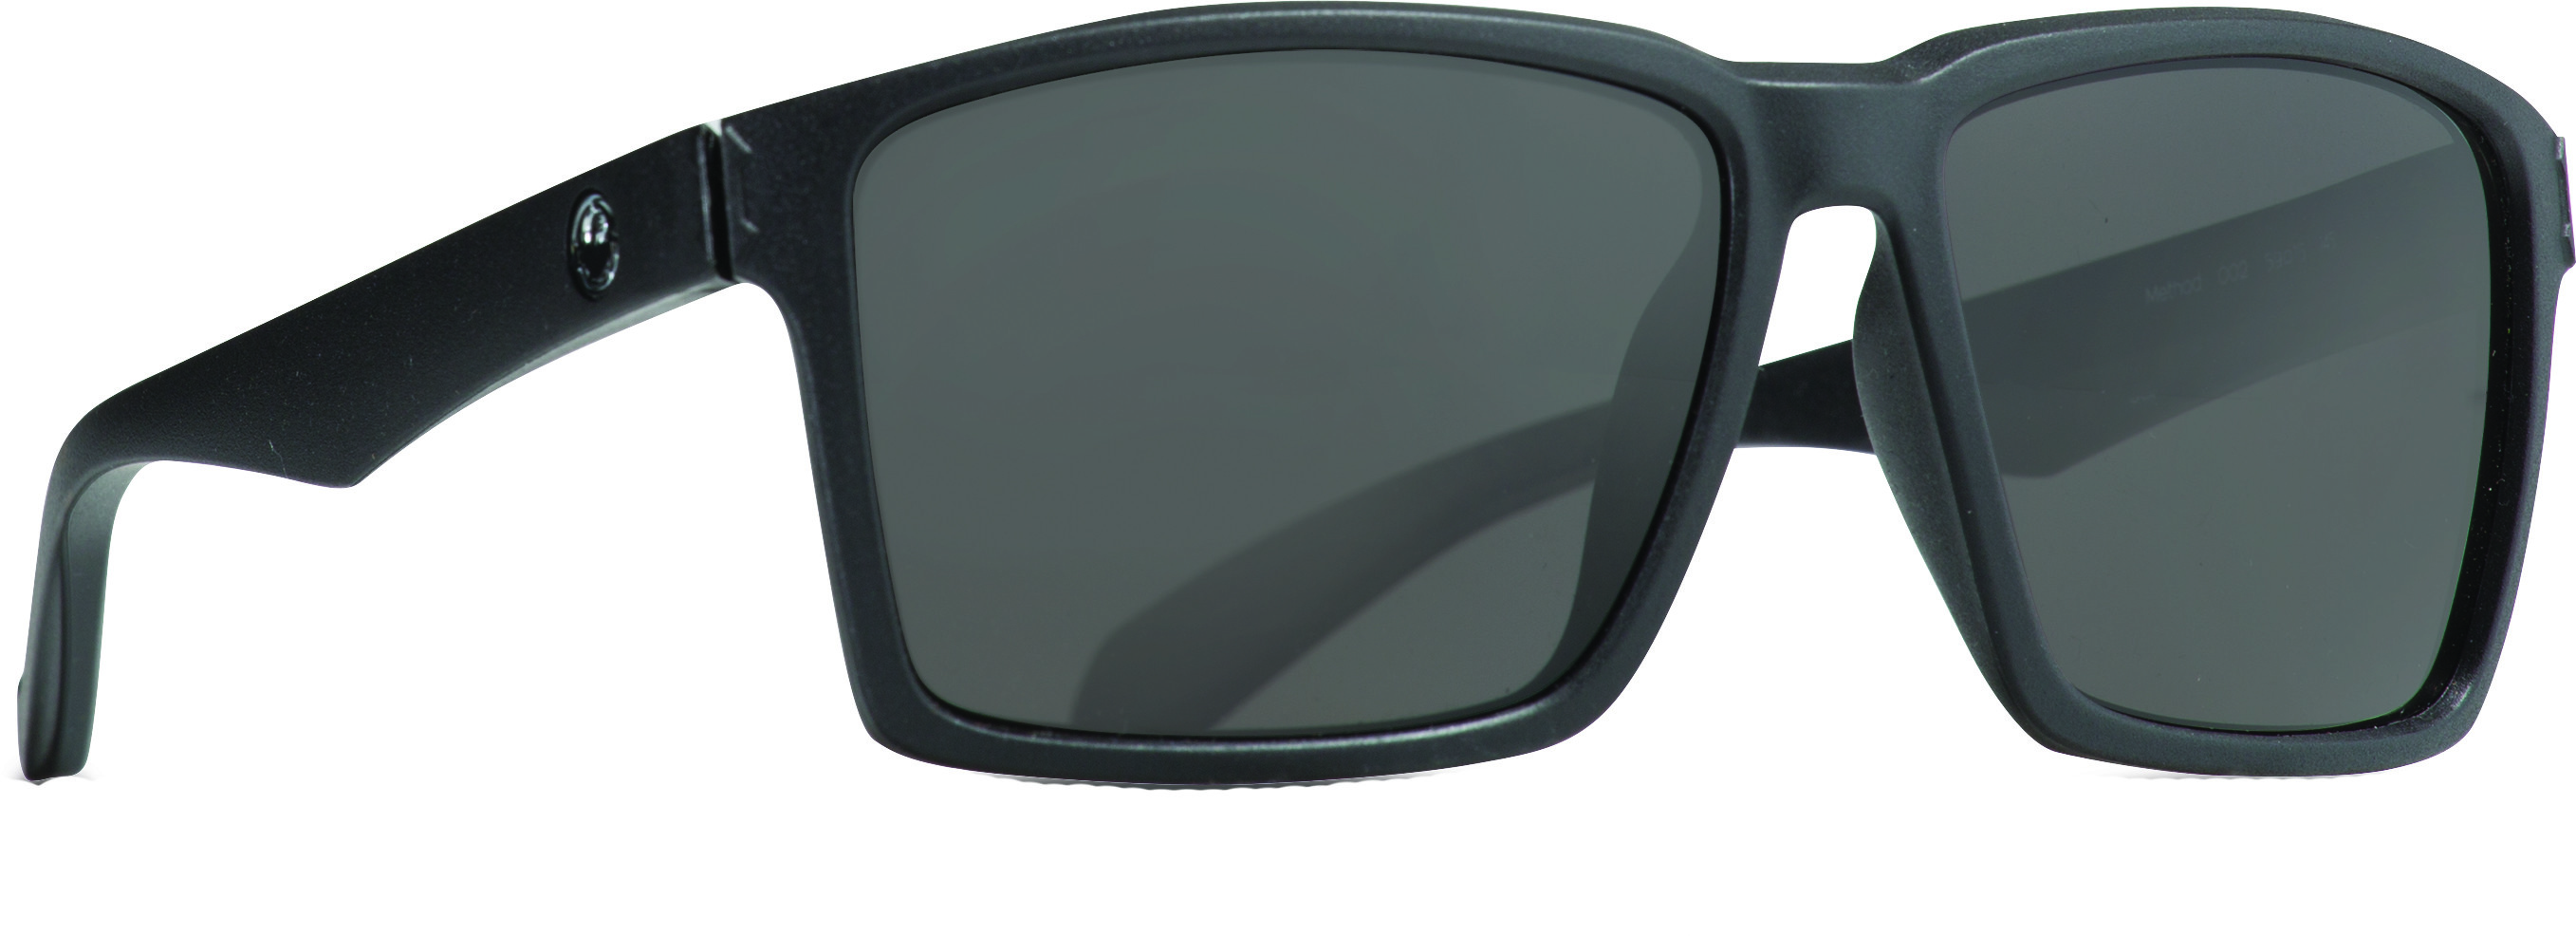 Method Sunglasses Matte Black W/Smoke Lens